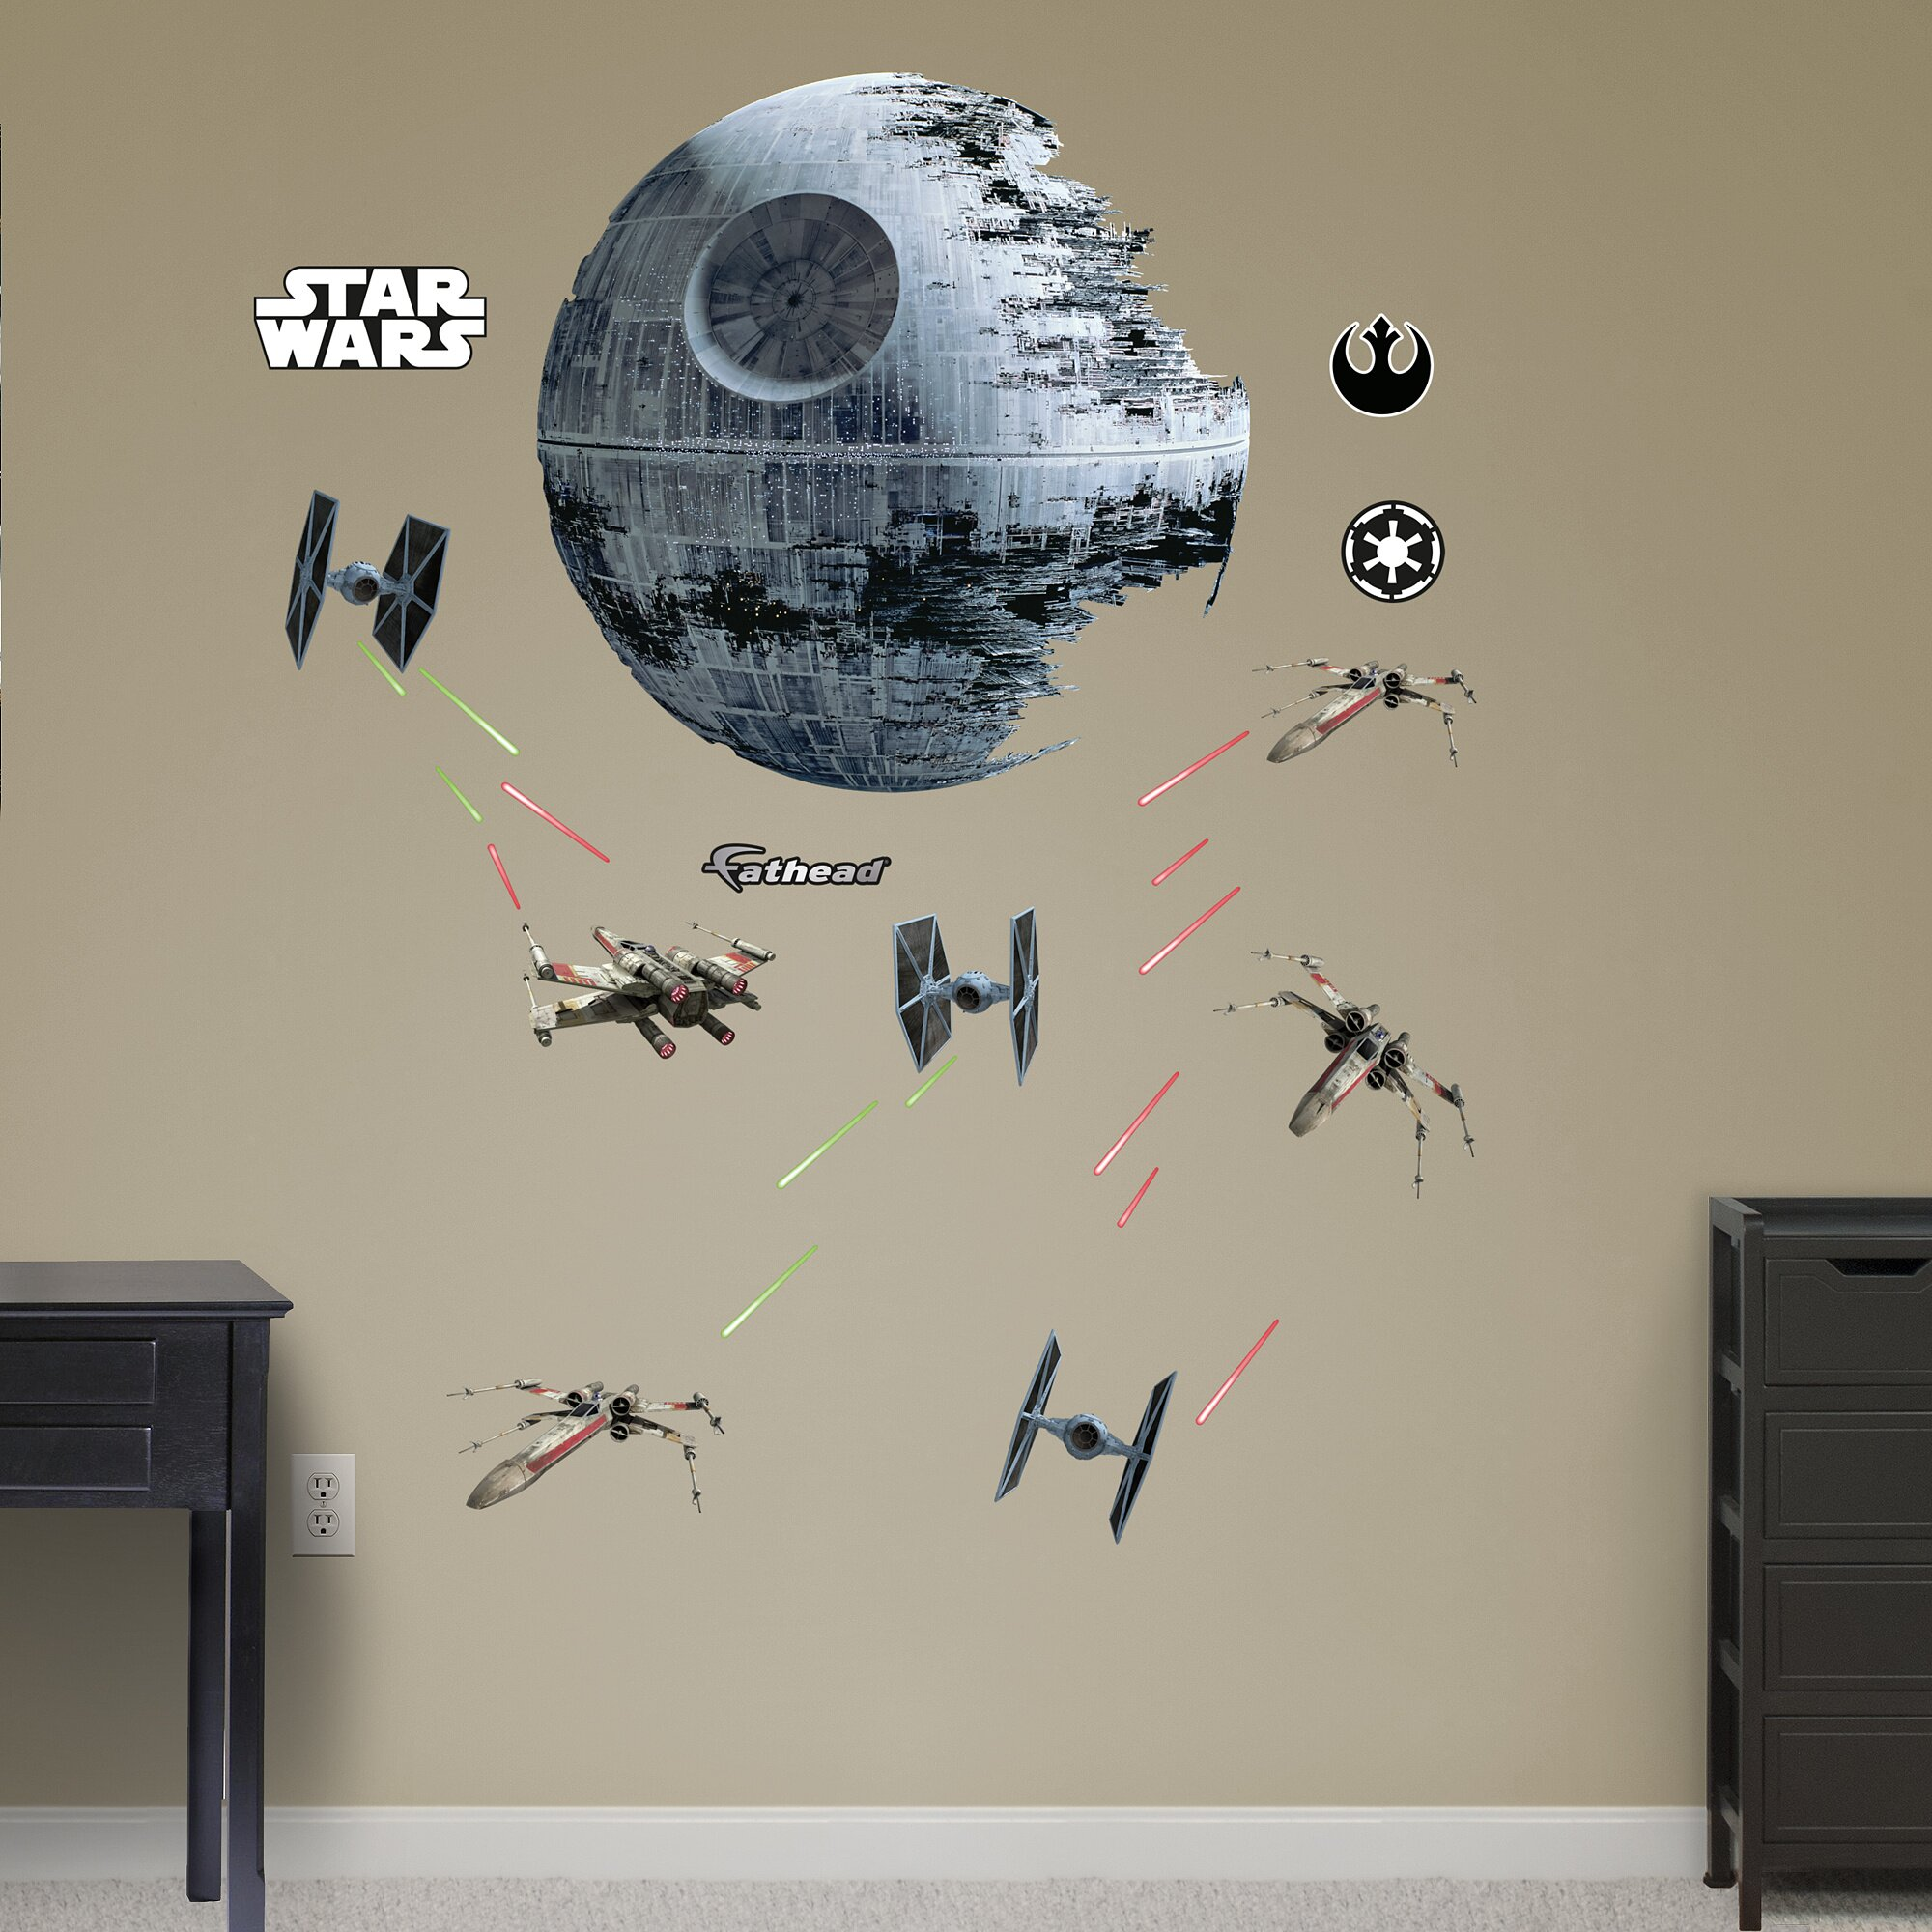 star wars wall decals fathead realbig wars battle wall decal 11697